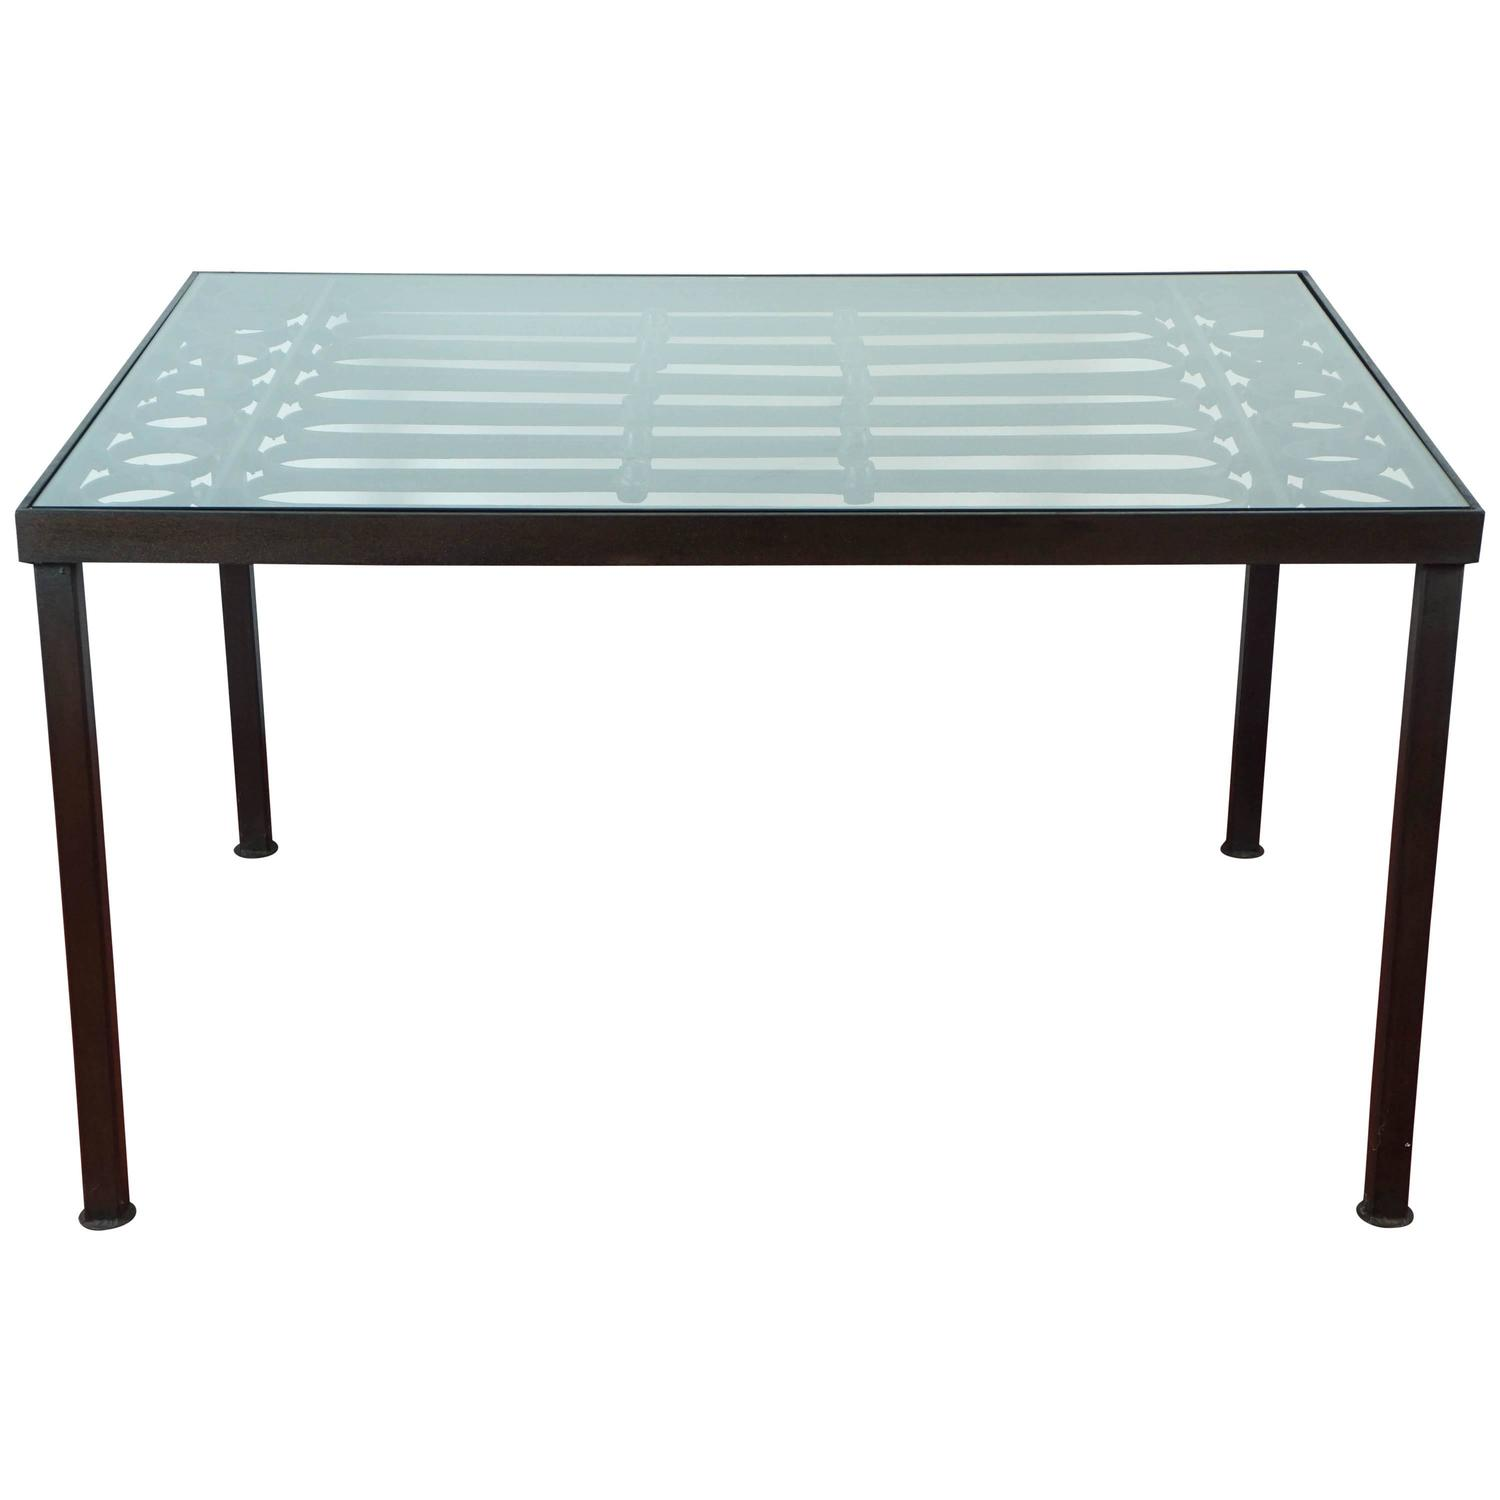 Wrought Iron And Glass Indoor/Outdoor Dining Table For Sale At 1stdibs